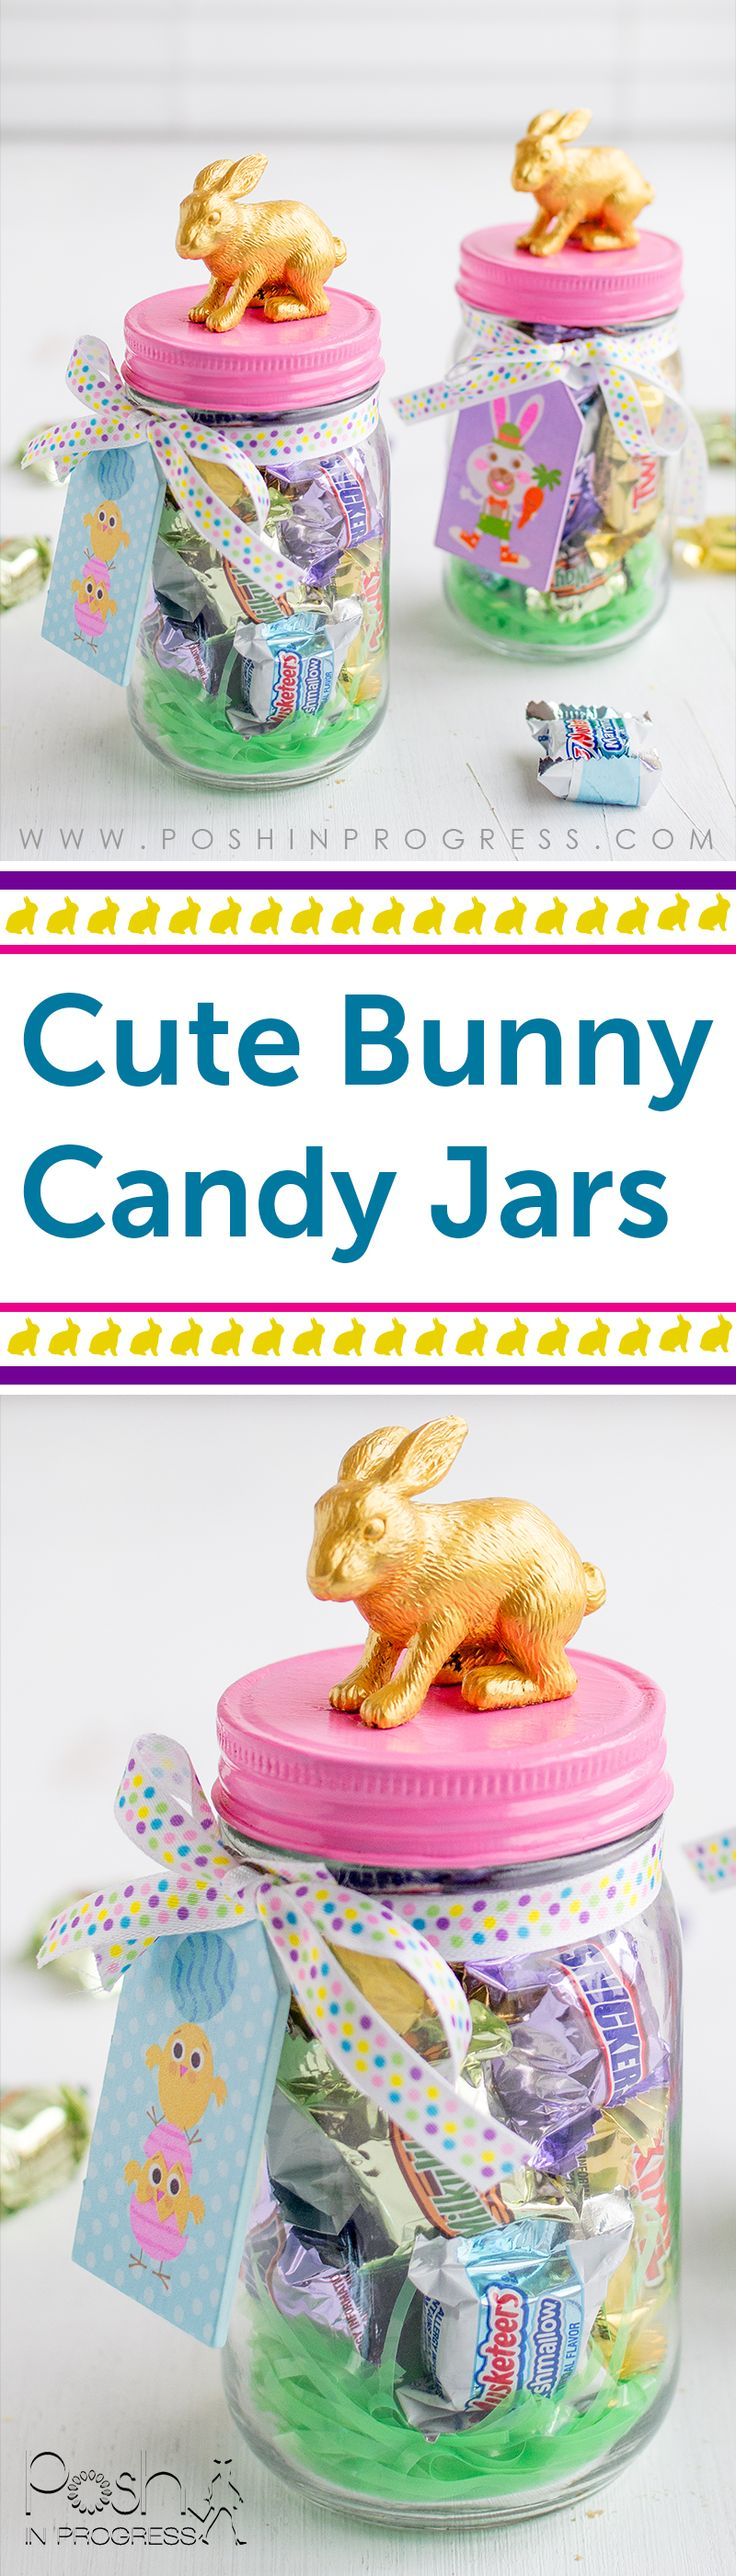 Need adorable but quick DIY Easter decor? You should make this simple bunny candy jar craft. It may be the cutest and easiest DIY Easter project ever! #SpringMoments @SamsClub [ad]